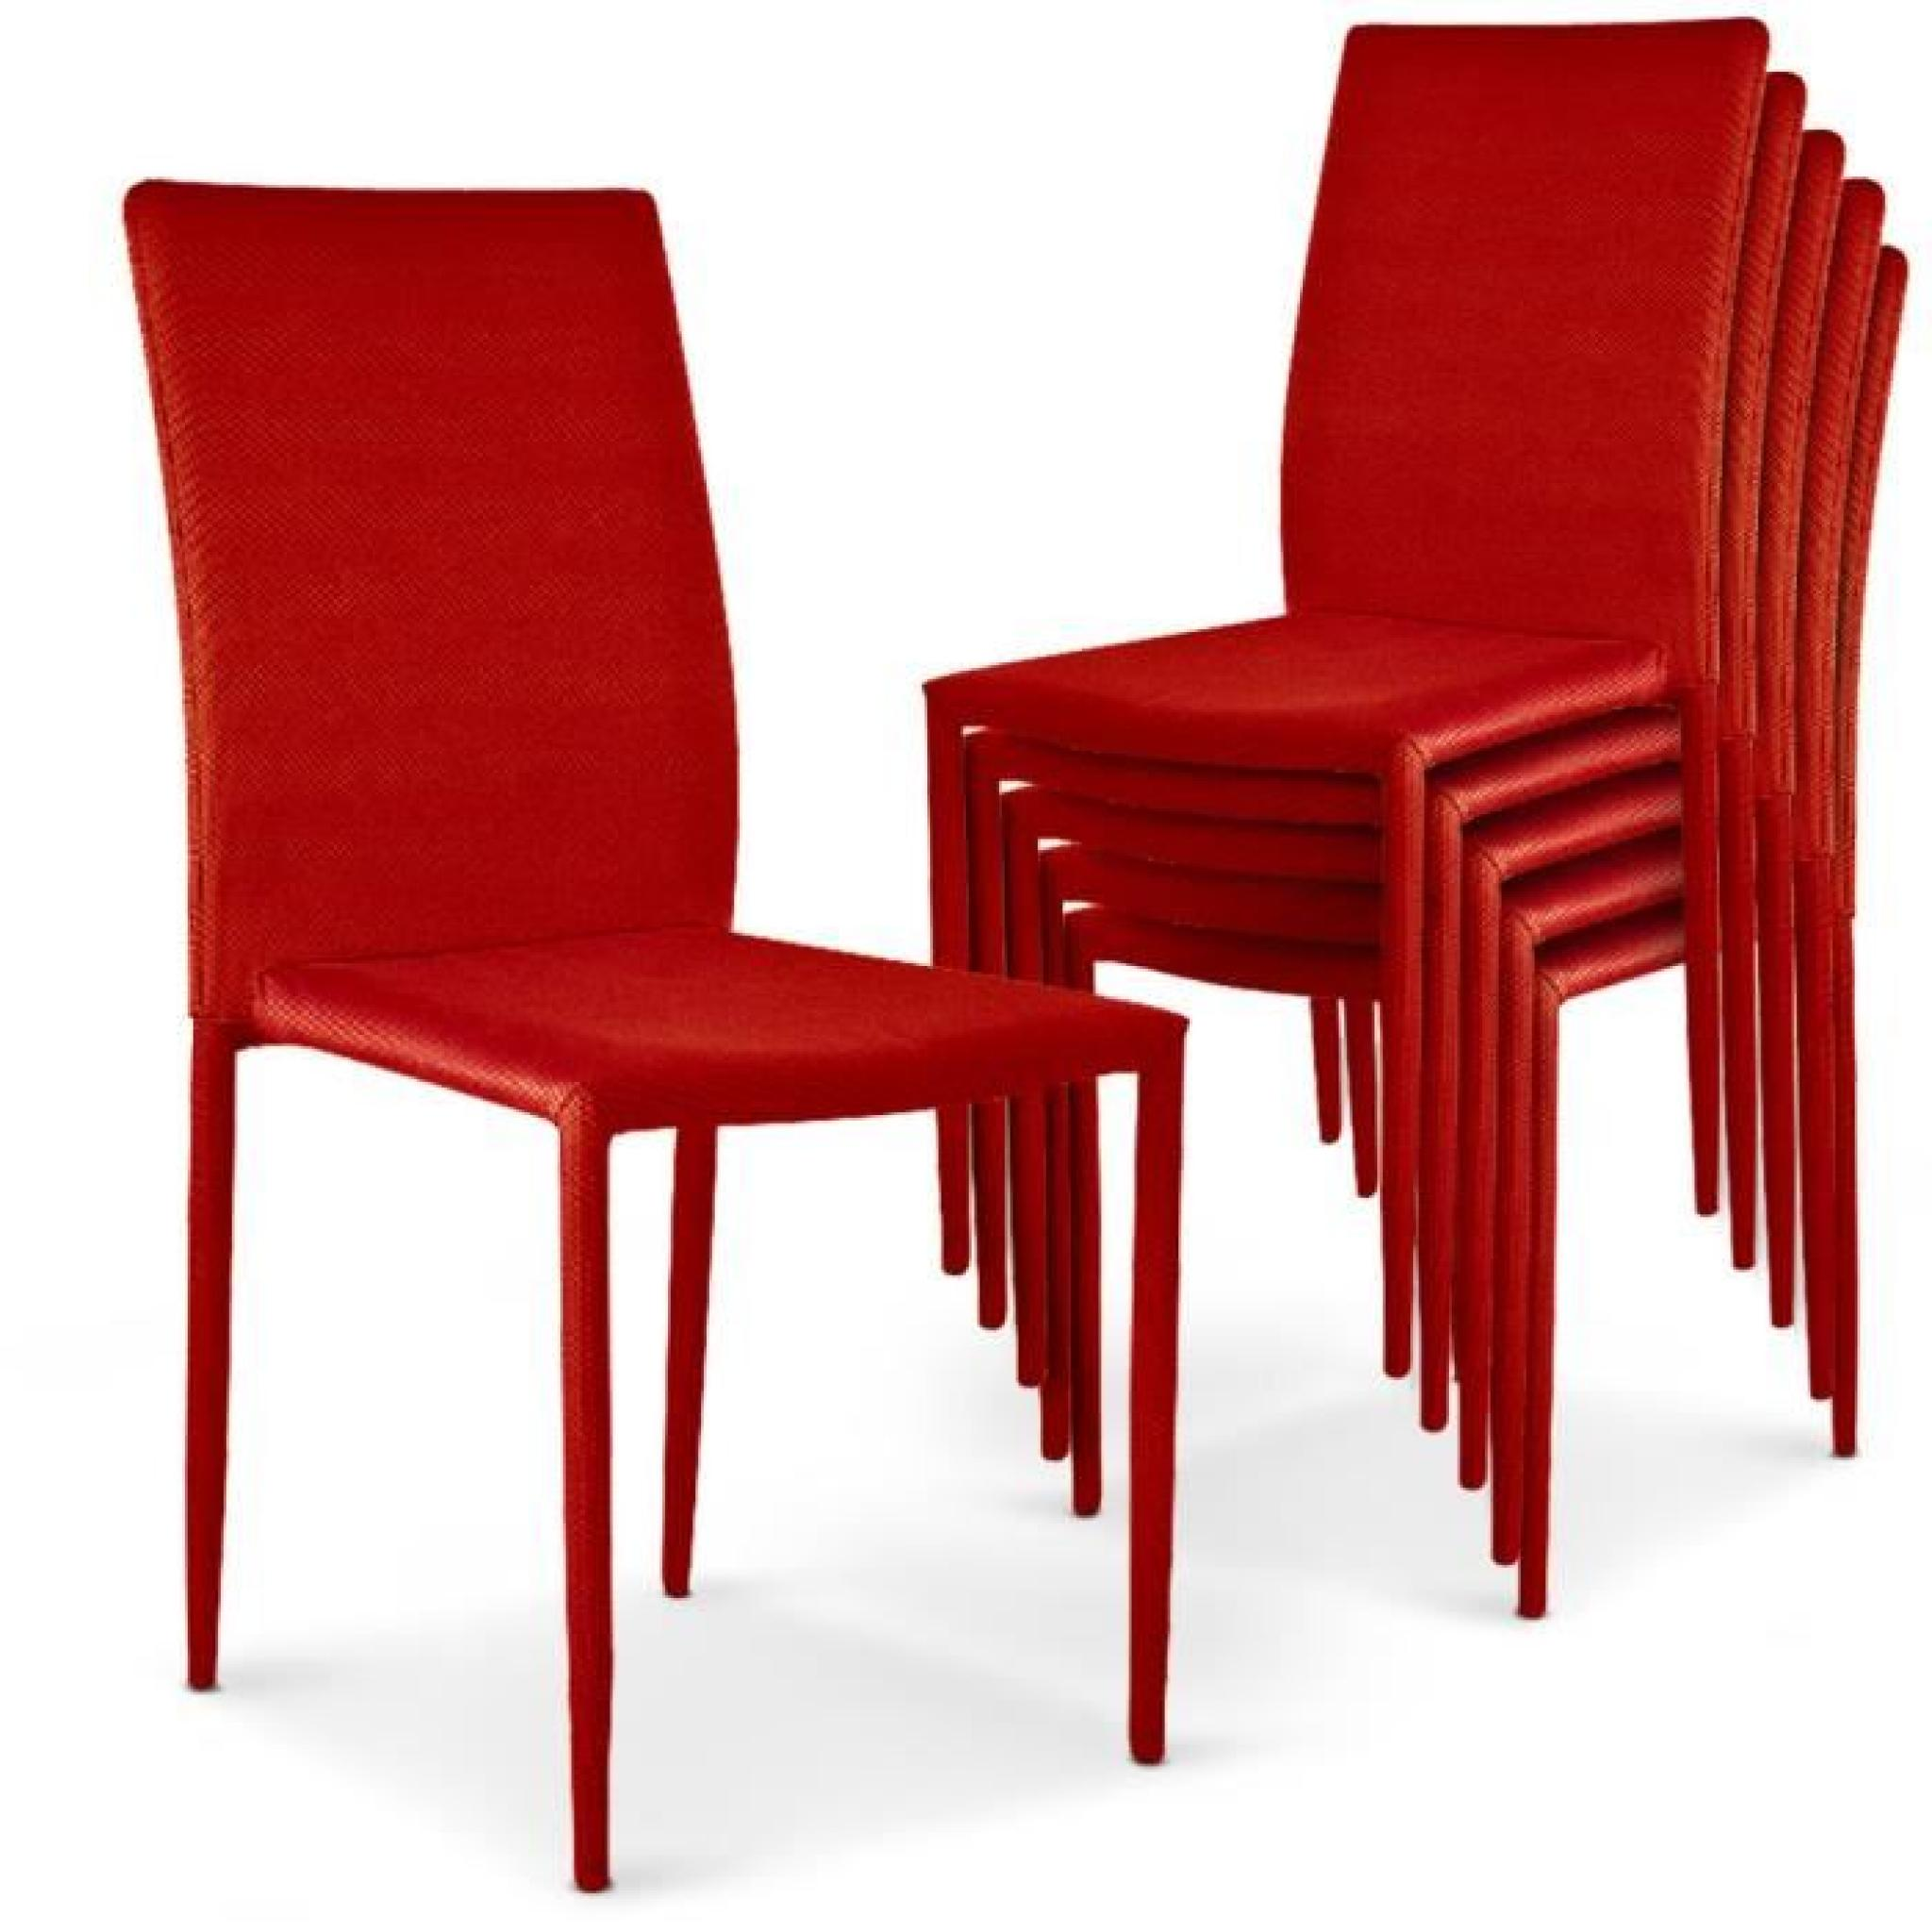 lot de 6 chaises empilables modan rouge achat vente chaise salle a manger pas cher couleur. Black Bedroom Furniture Sets. Home Design Ideas